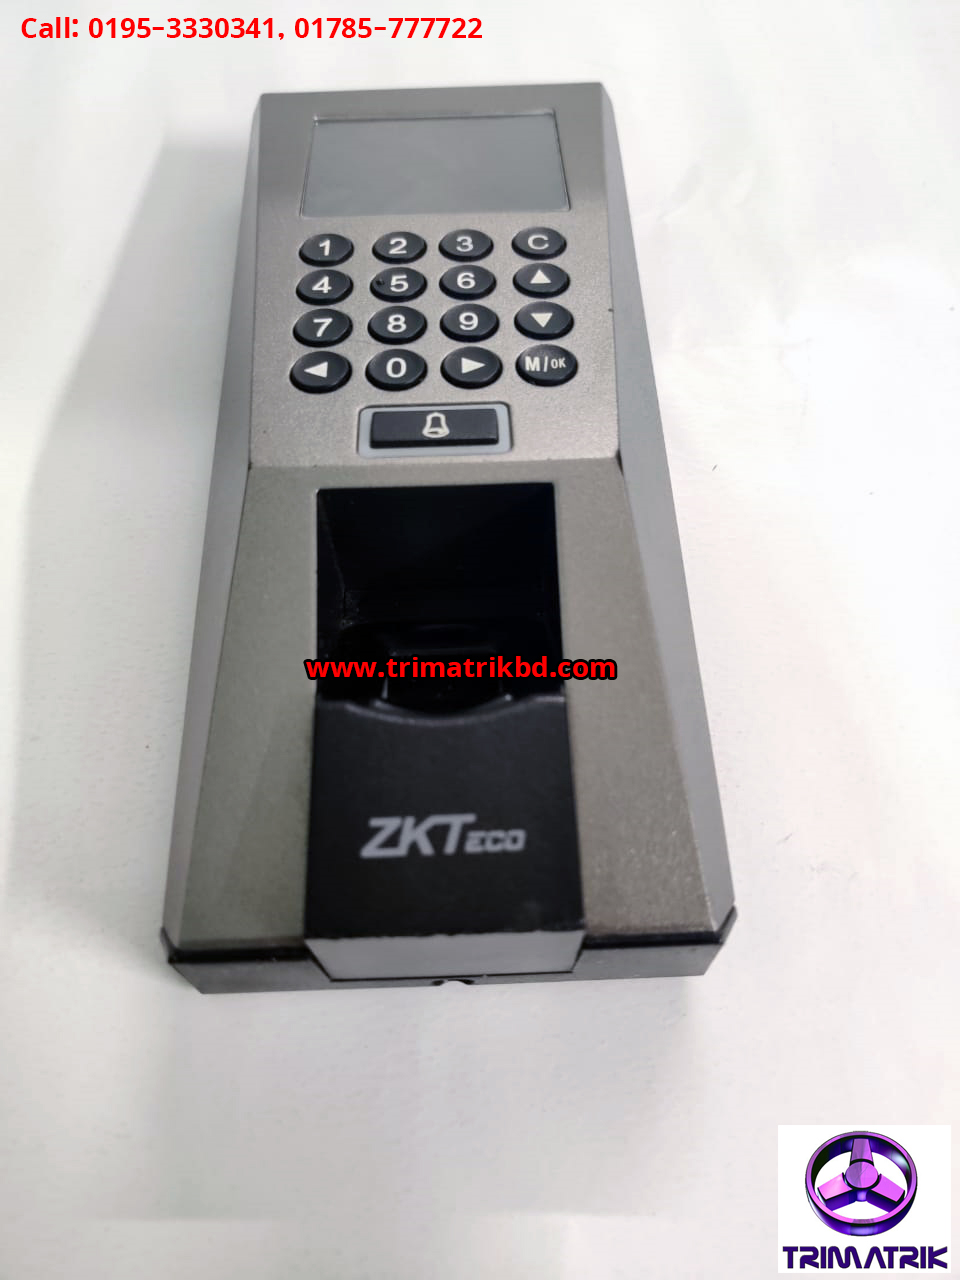 ZKTeco F18 price in Bangladesh